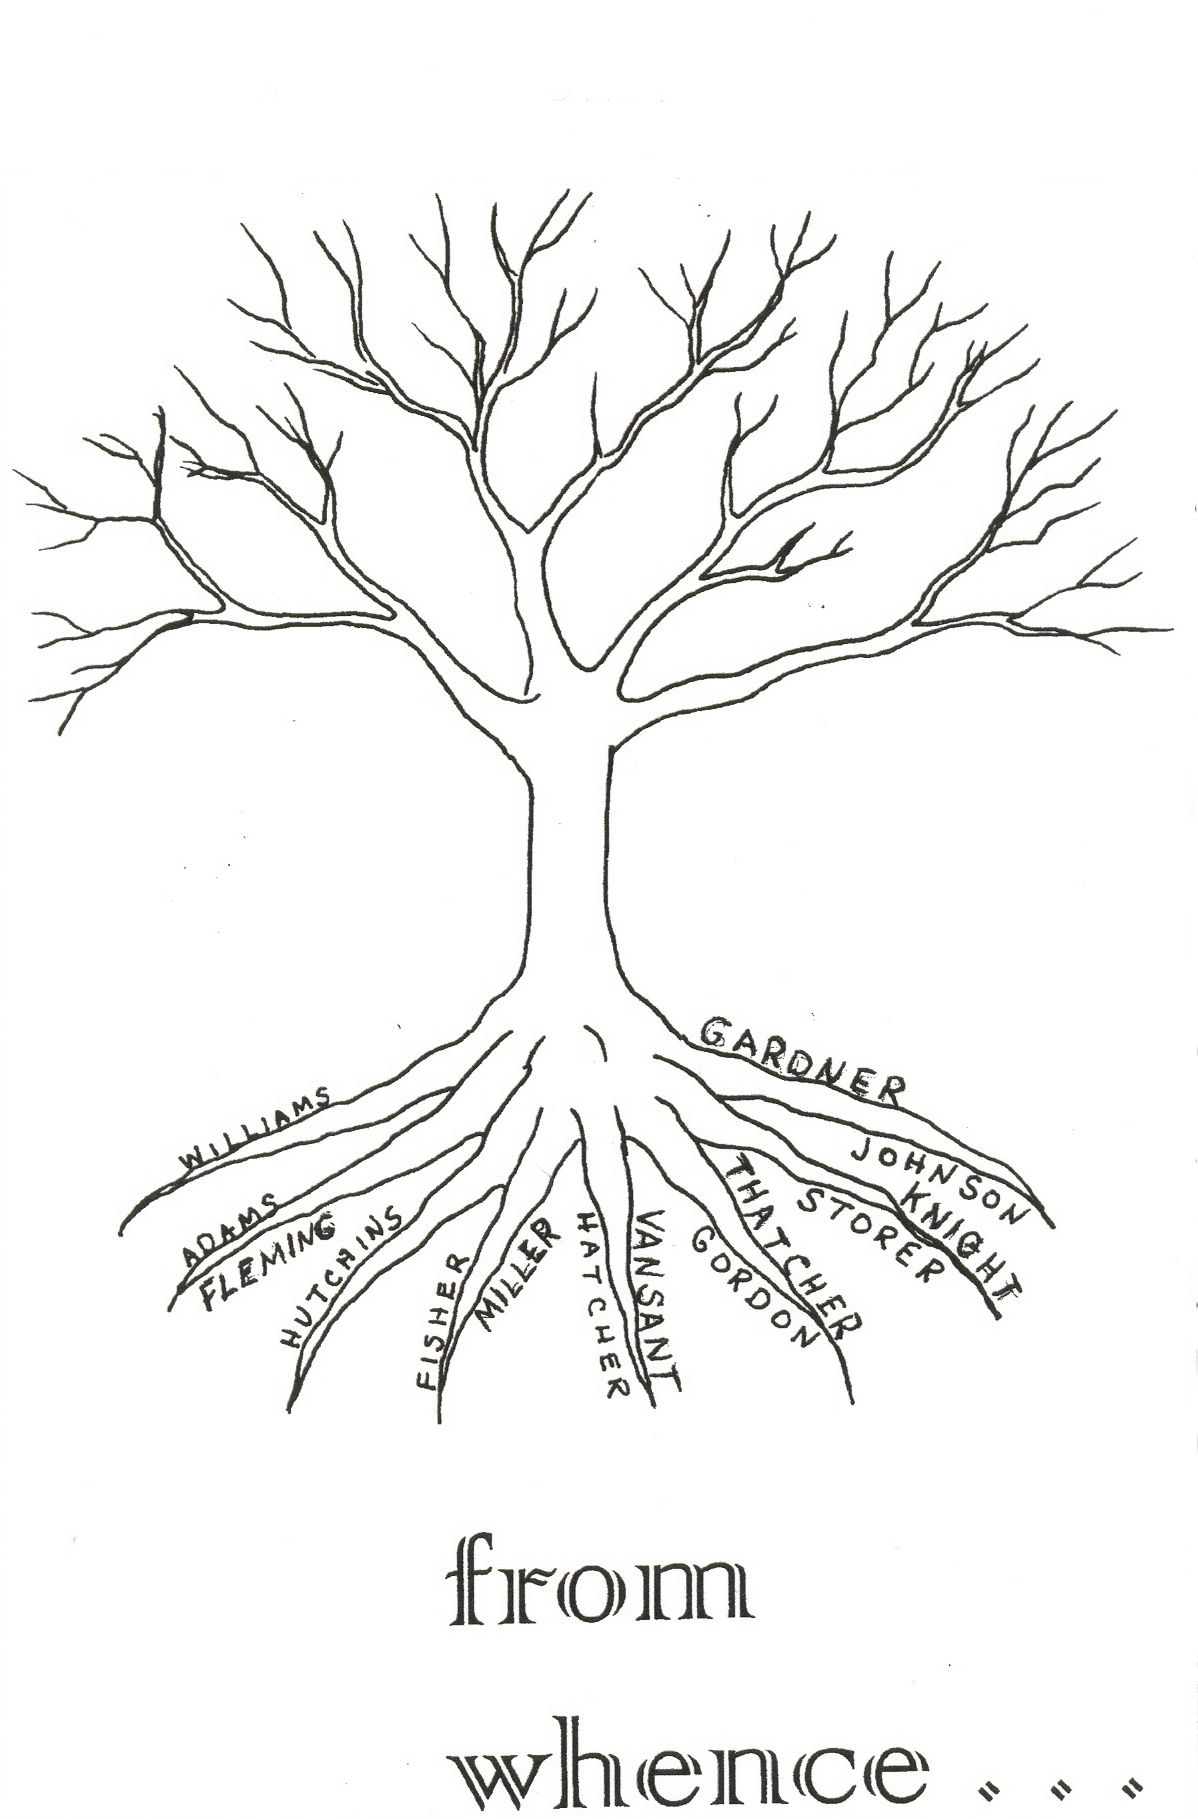 Image Of My Familly Tree Roots And Branches